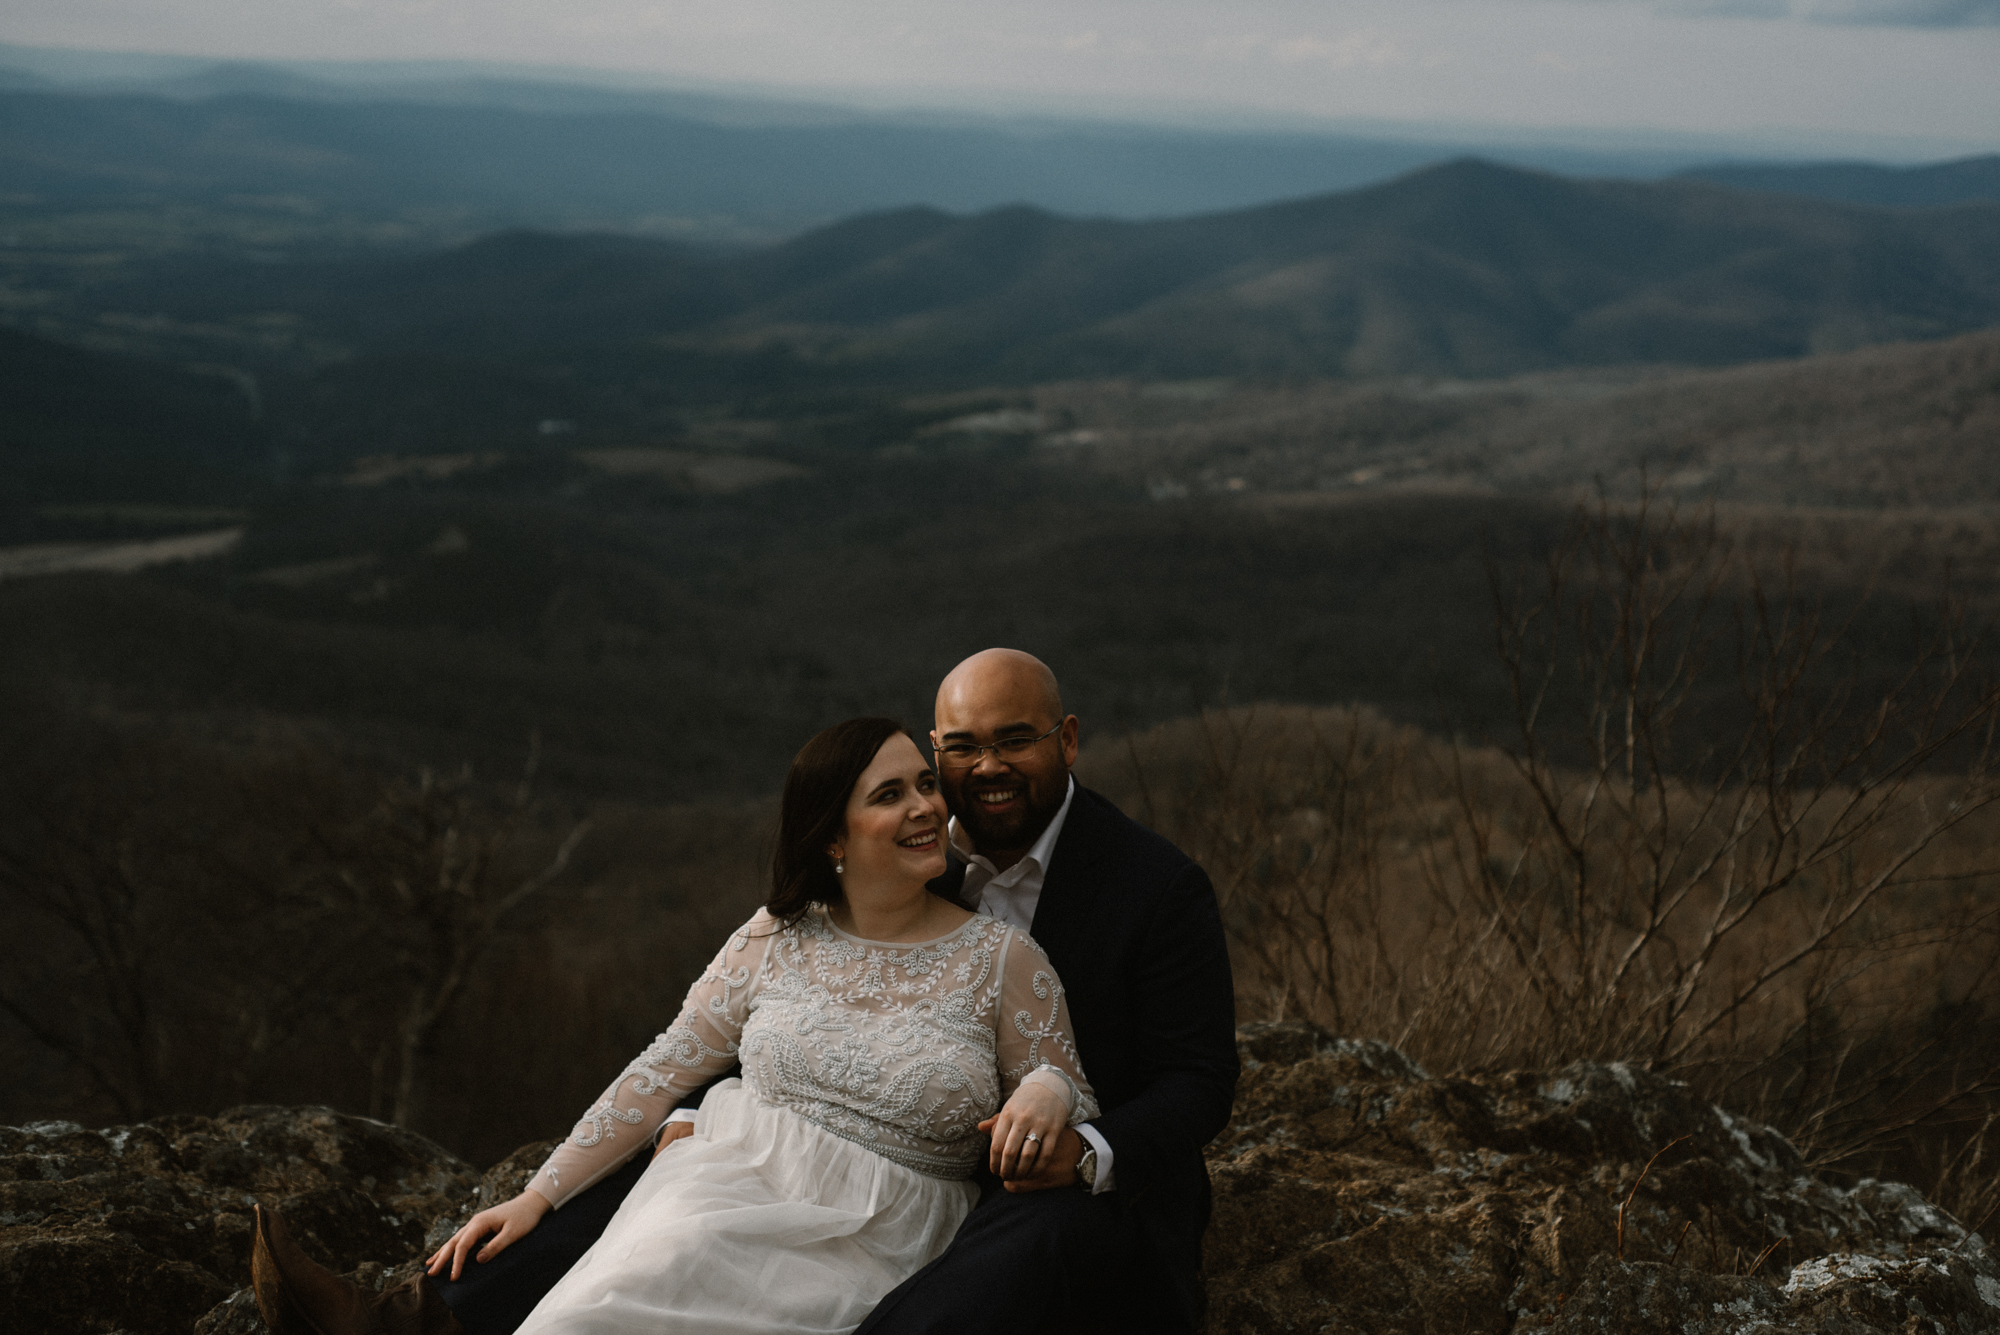 Emma and Jeddah - Intimate Luray Wedding - Shenandoah National Park Wedding - Adventure Elopement in Virginia - Shenandoah National Park Elopement_58.jpg